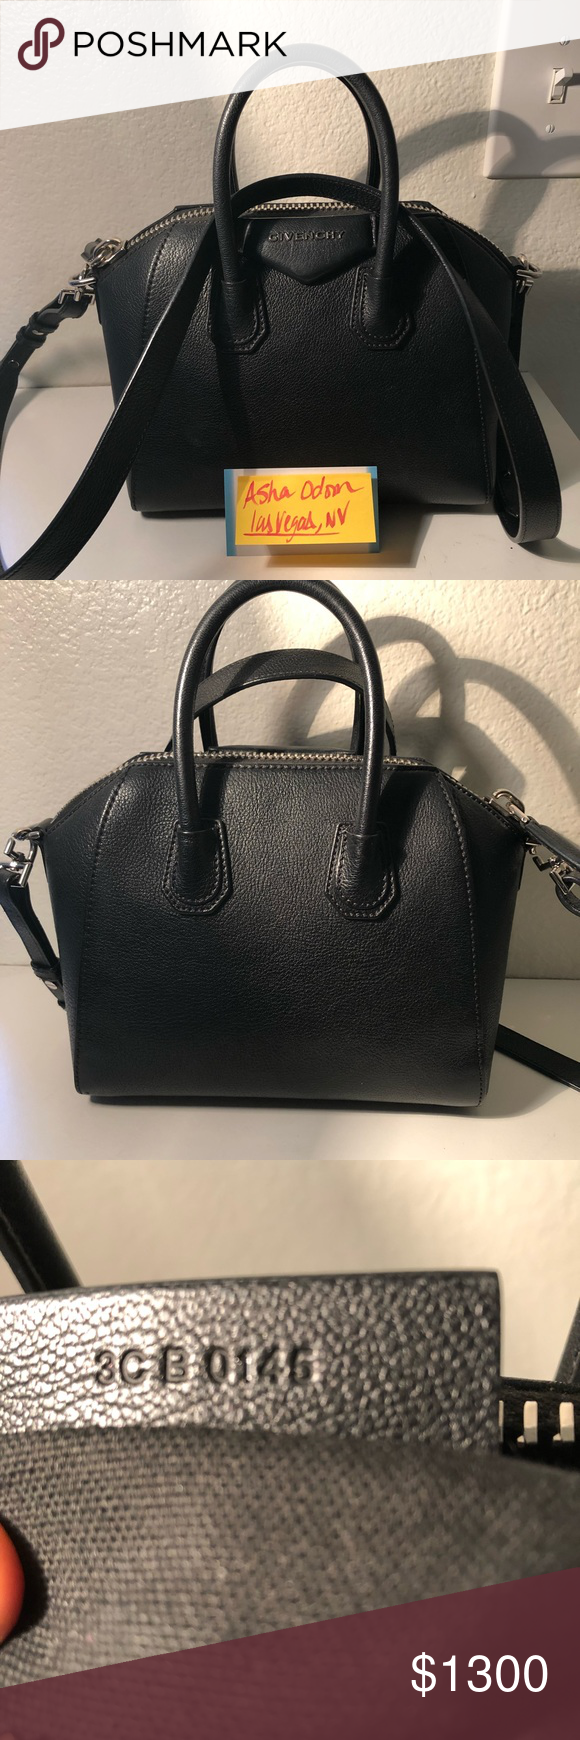 Givenchy Mini Antigona Black pebbled leather Pre loved Still has Leather  smell Authentic Comes with dust bag Receipt available Has a few scratches  NO TRADES ... f176d94bbd1f2